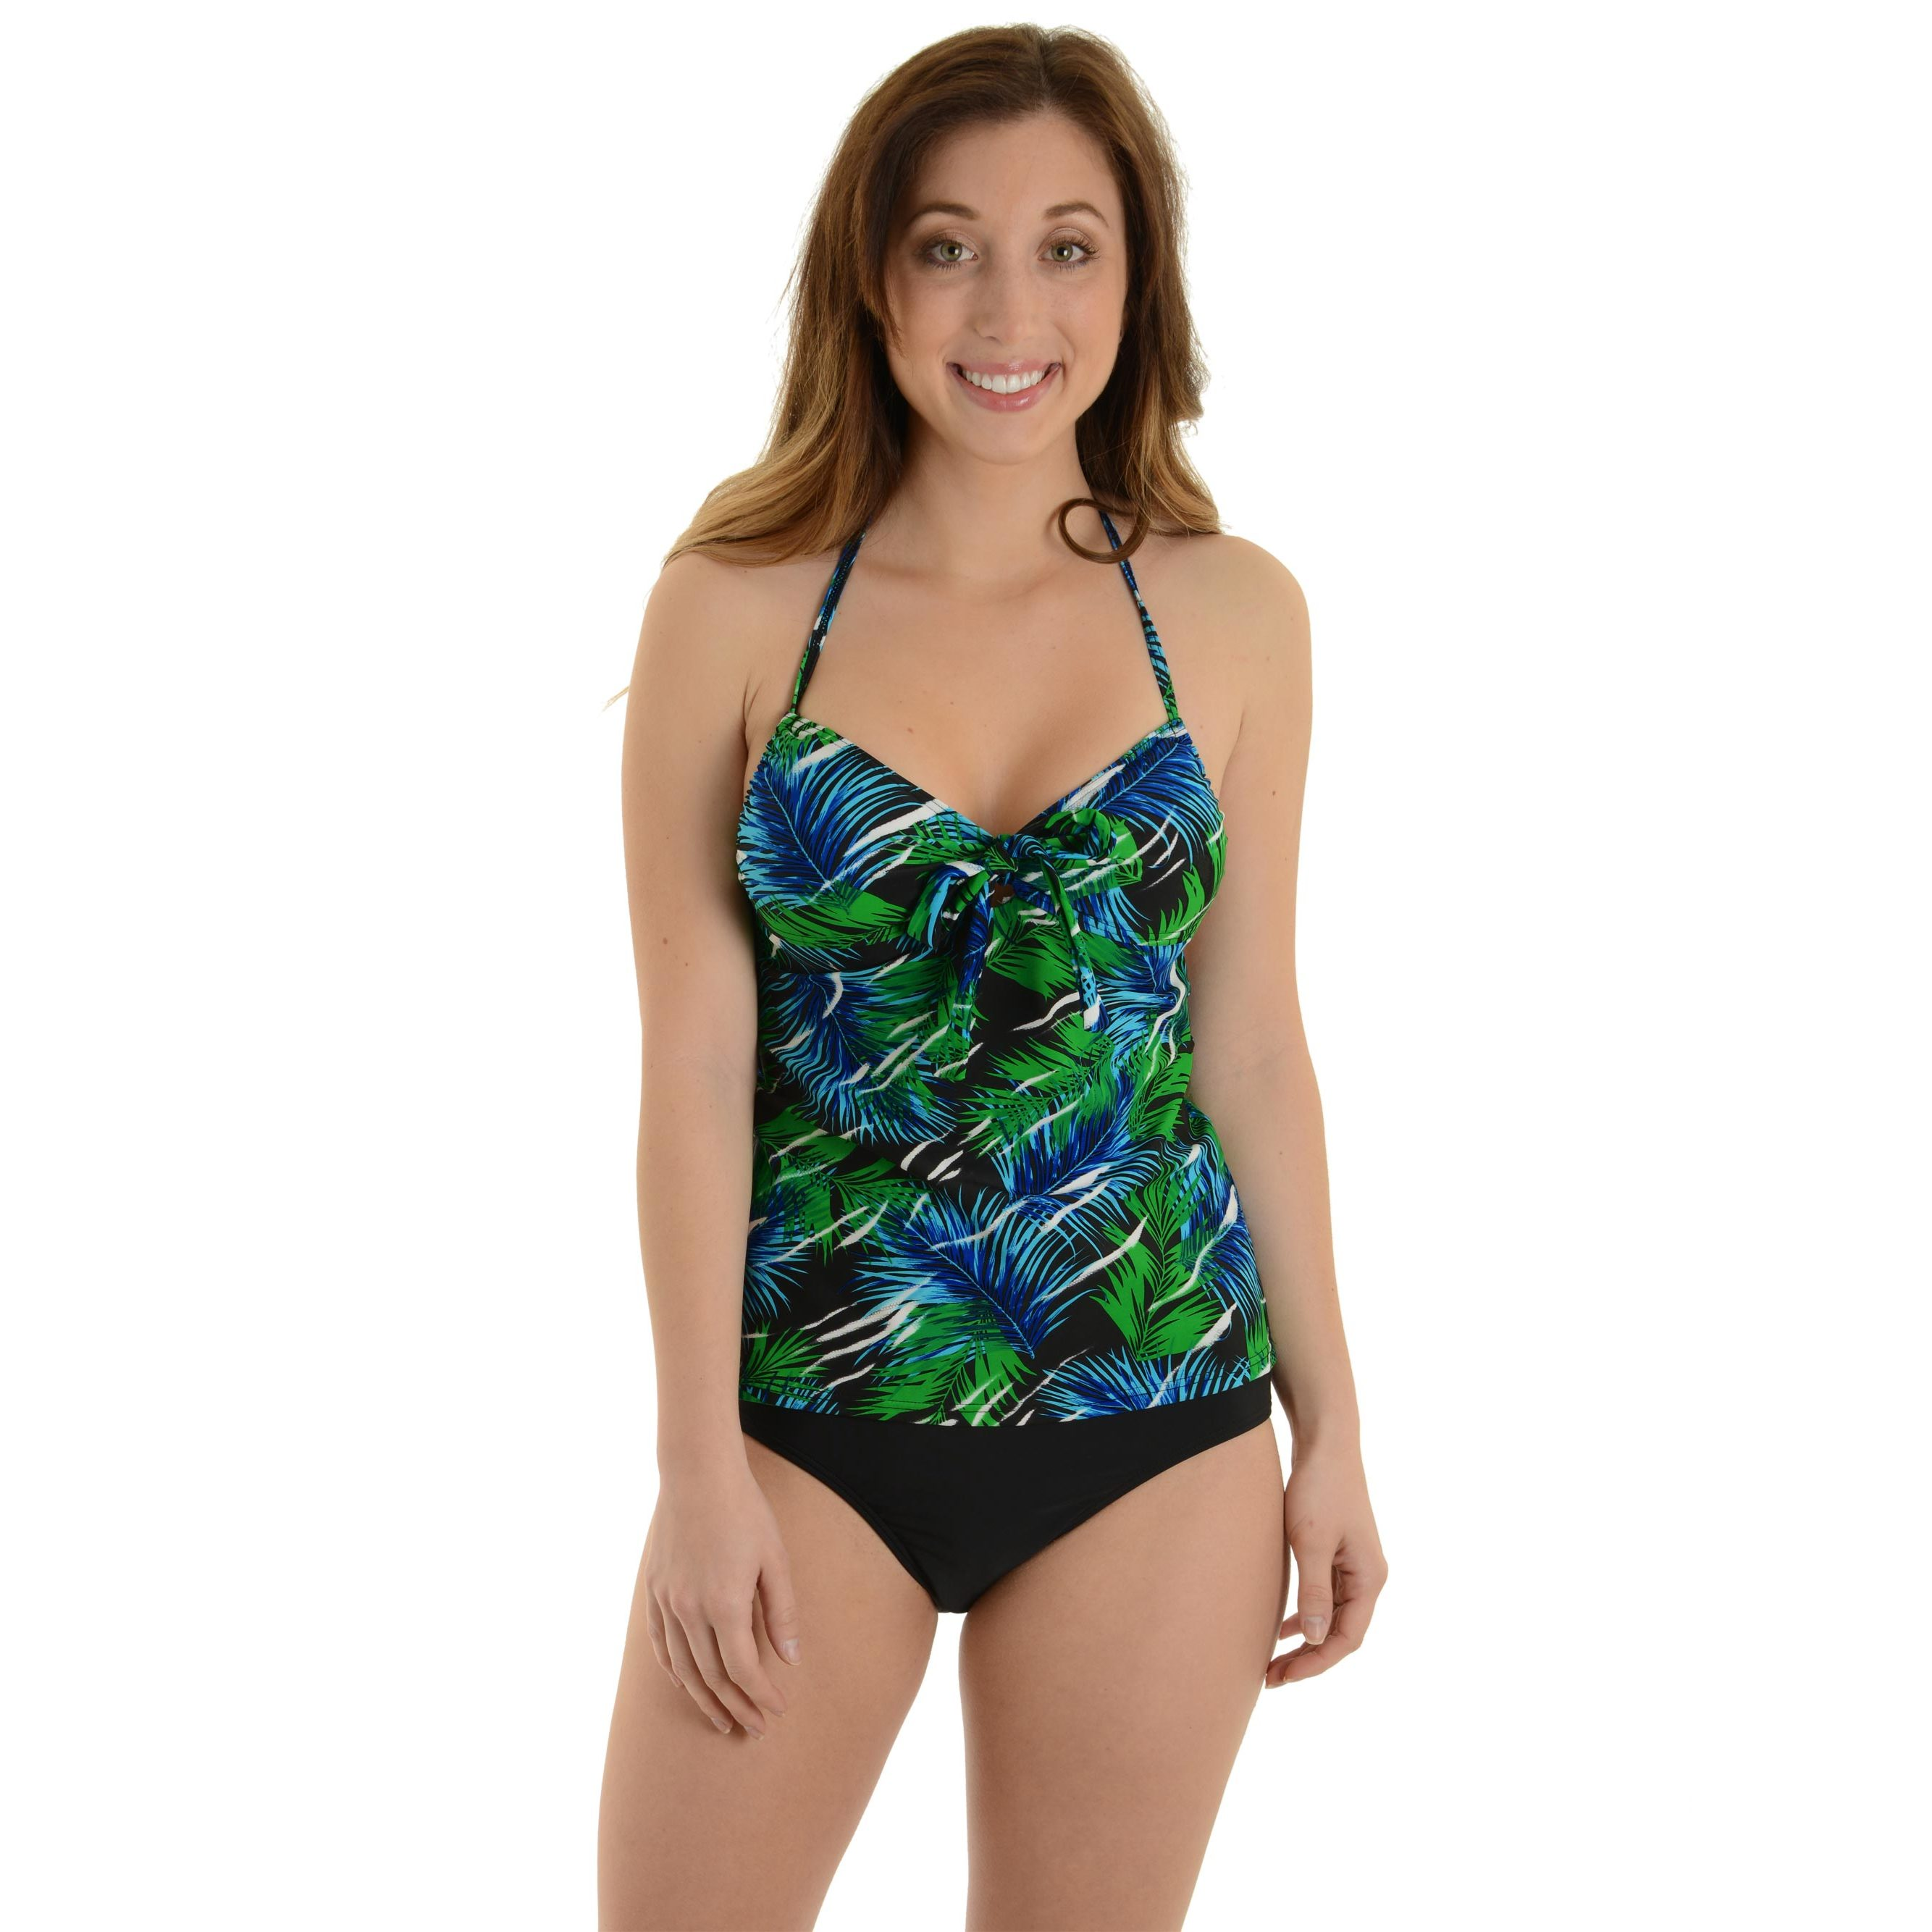 Caribbean Women's 2 Piece Halter Tankini Swimsuit Set with Tropical Print